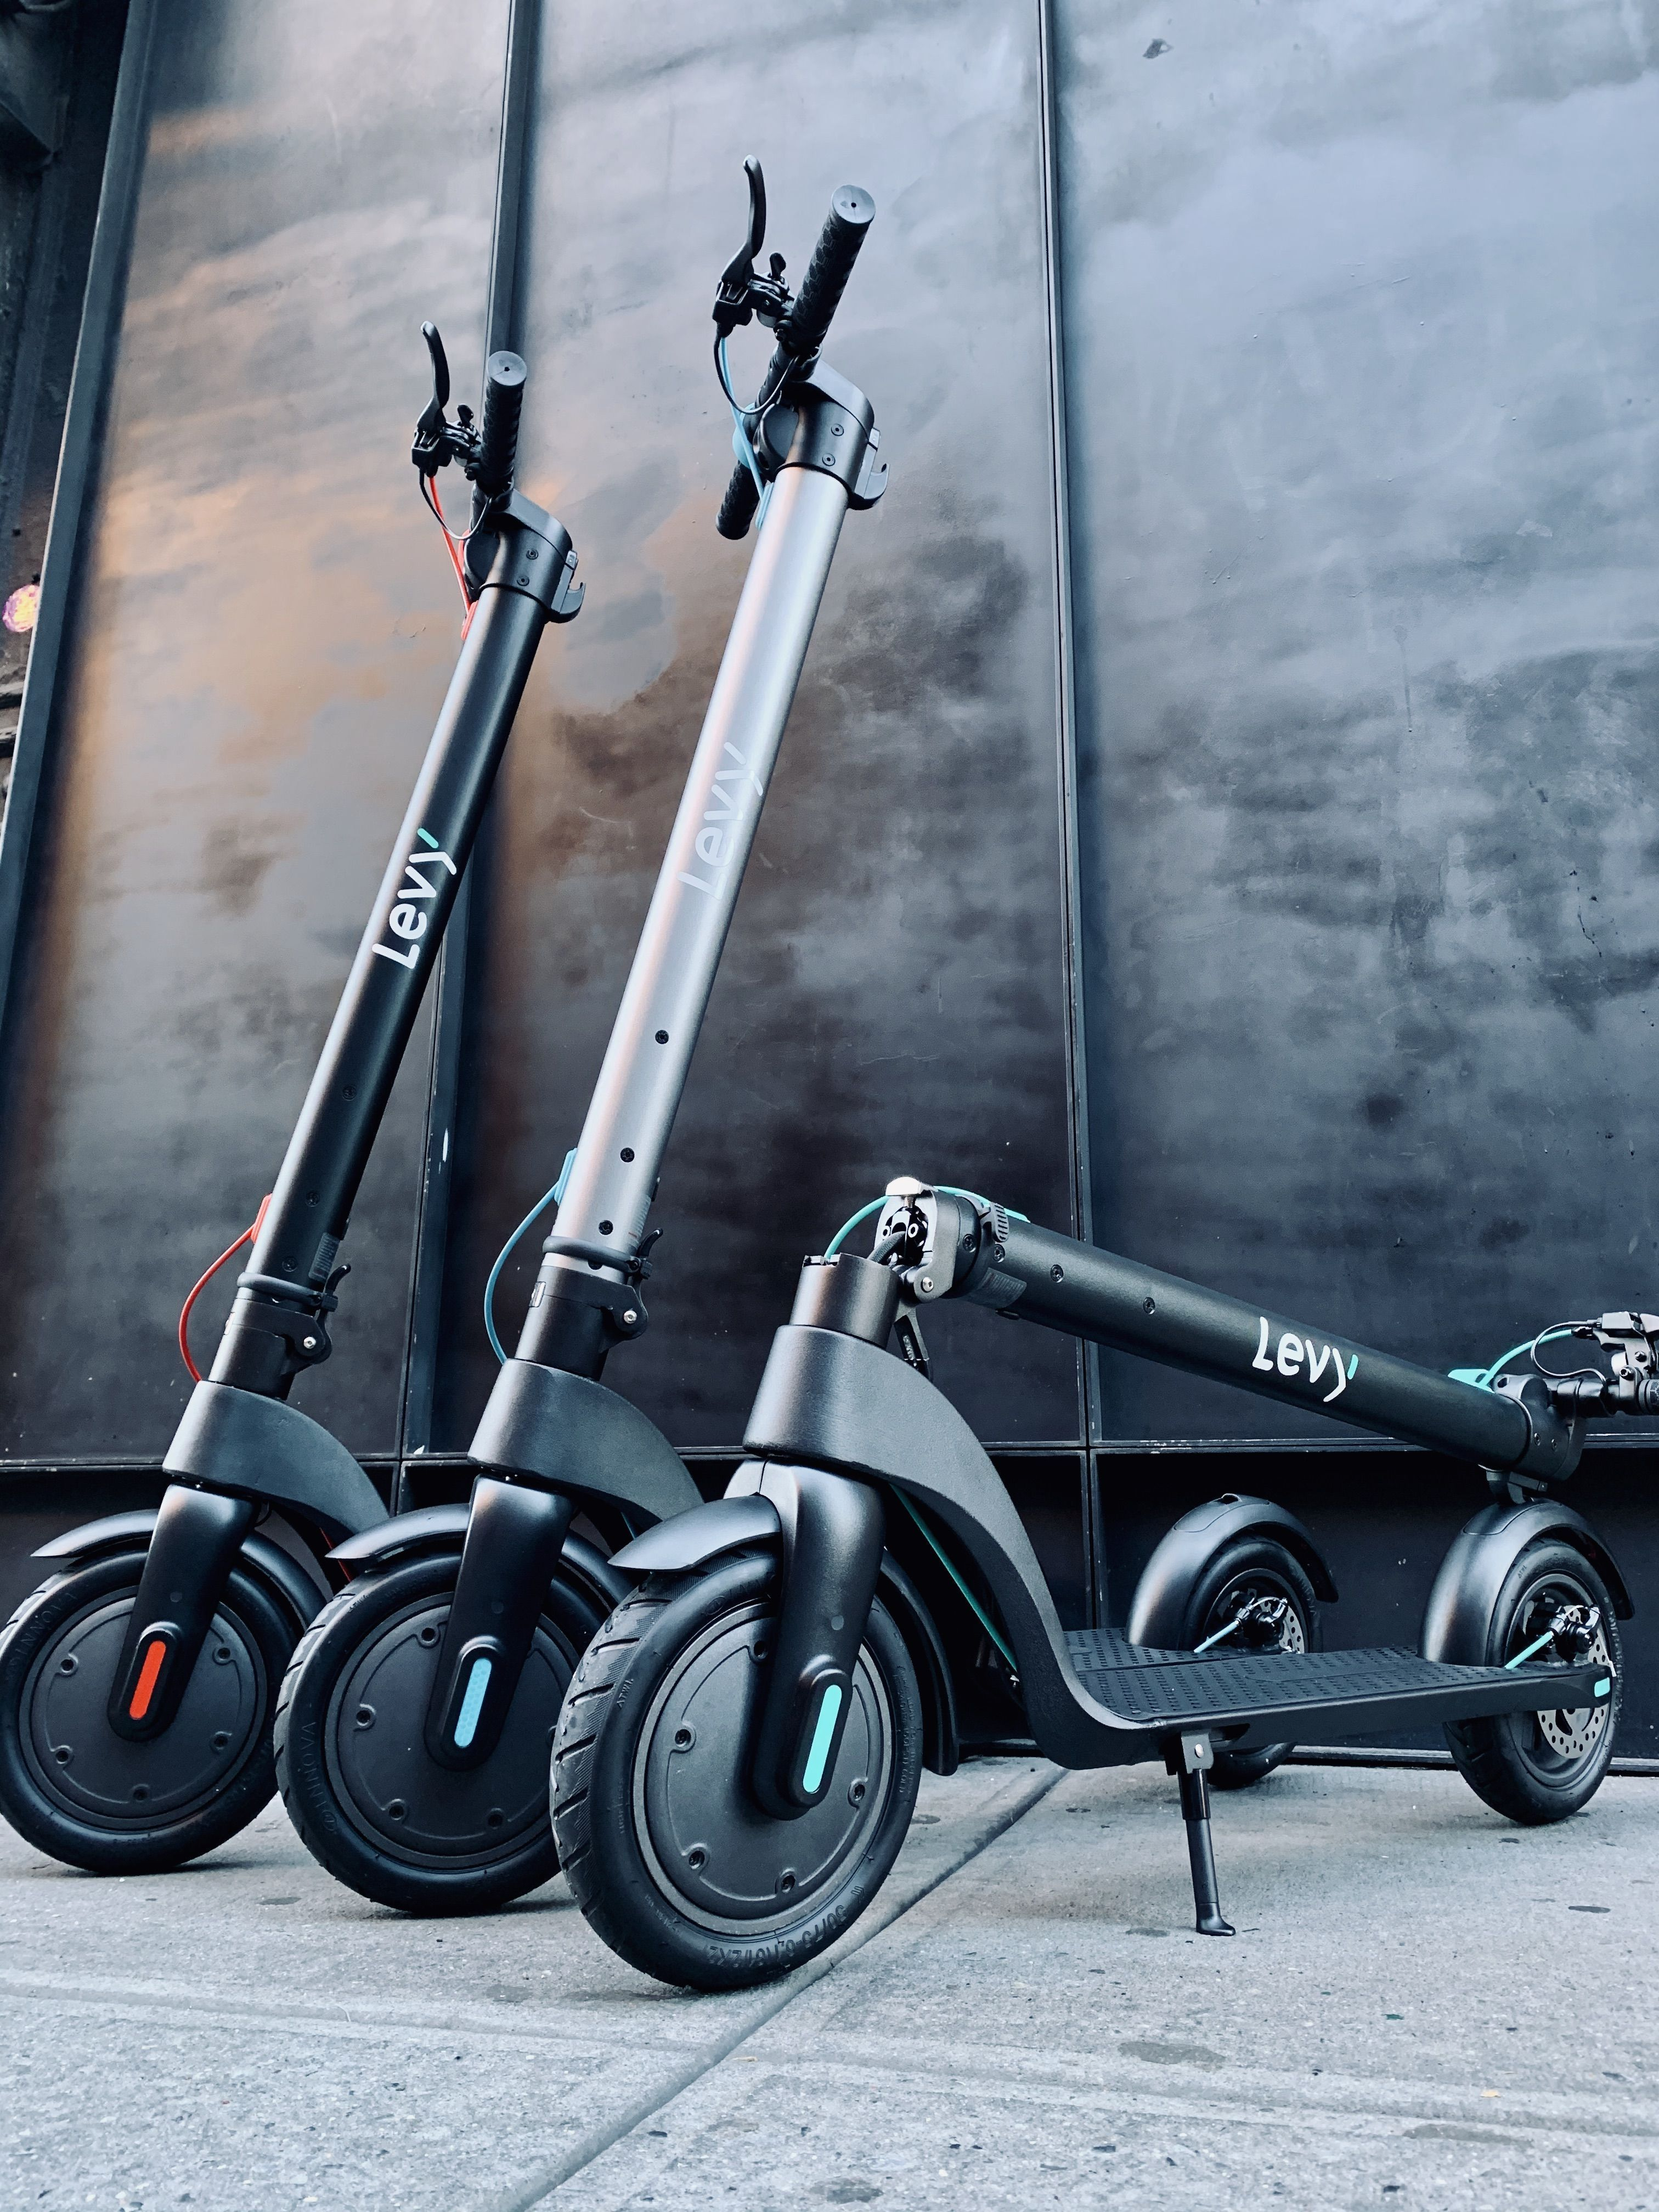 Levy Electric Swappable Battery Scooters Seriously Speed Up Your Commute In 2020 Black Friday Stores Scooter Black Friday Gift